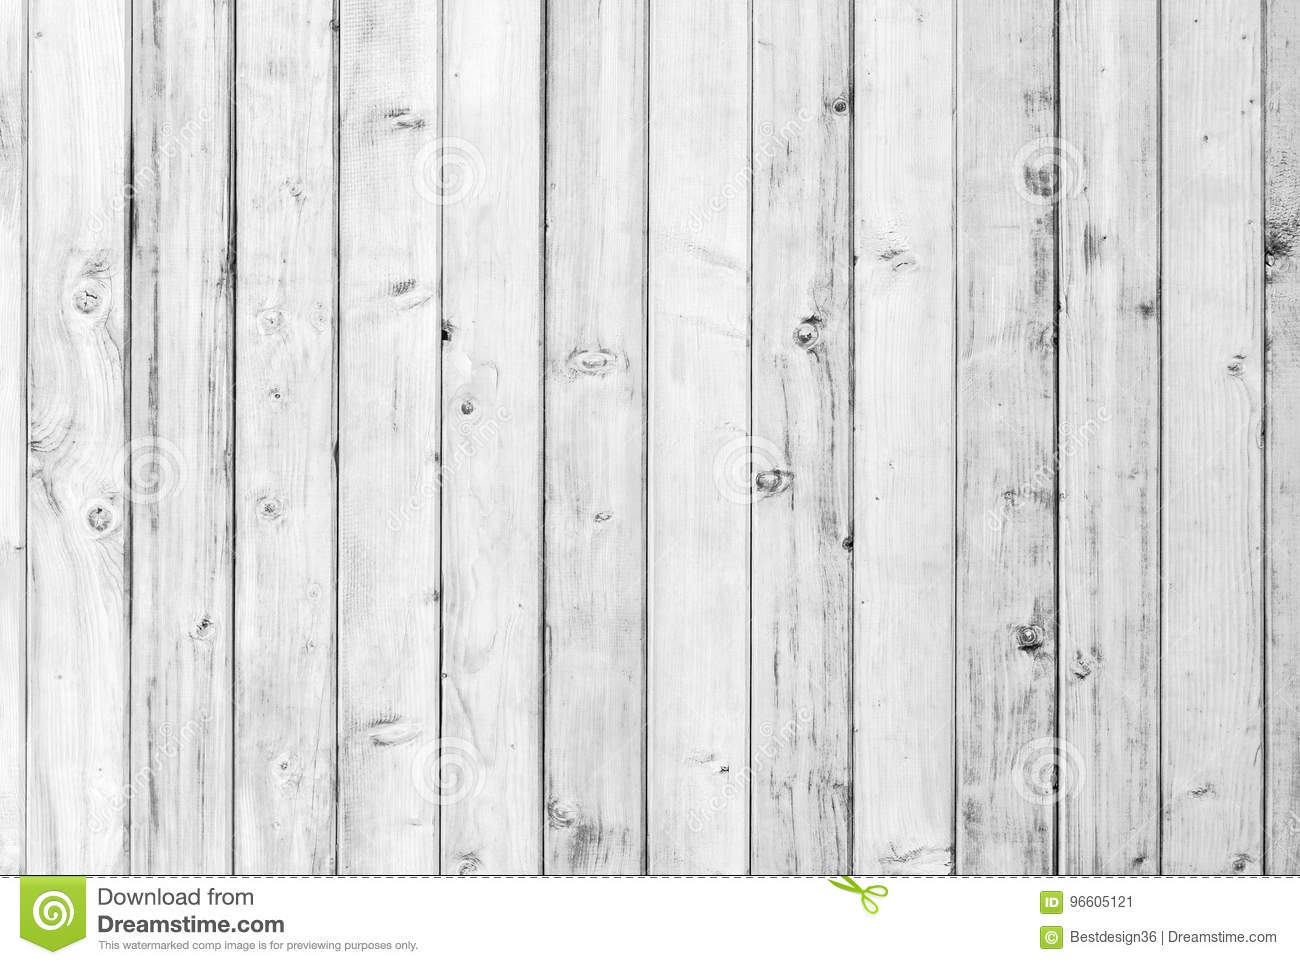 White old wood or wooden vintage plank floor or wall surface background decorative pattern. A minimal tabletop cover